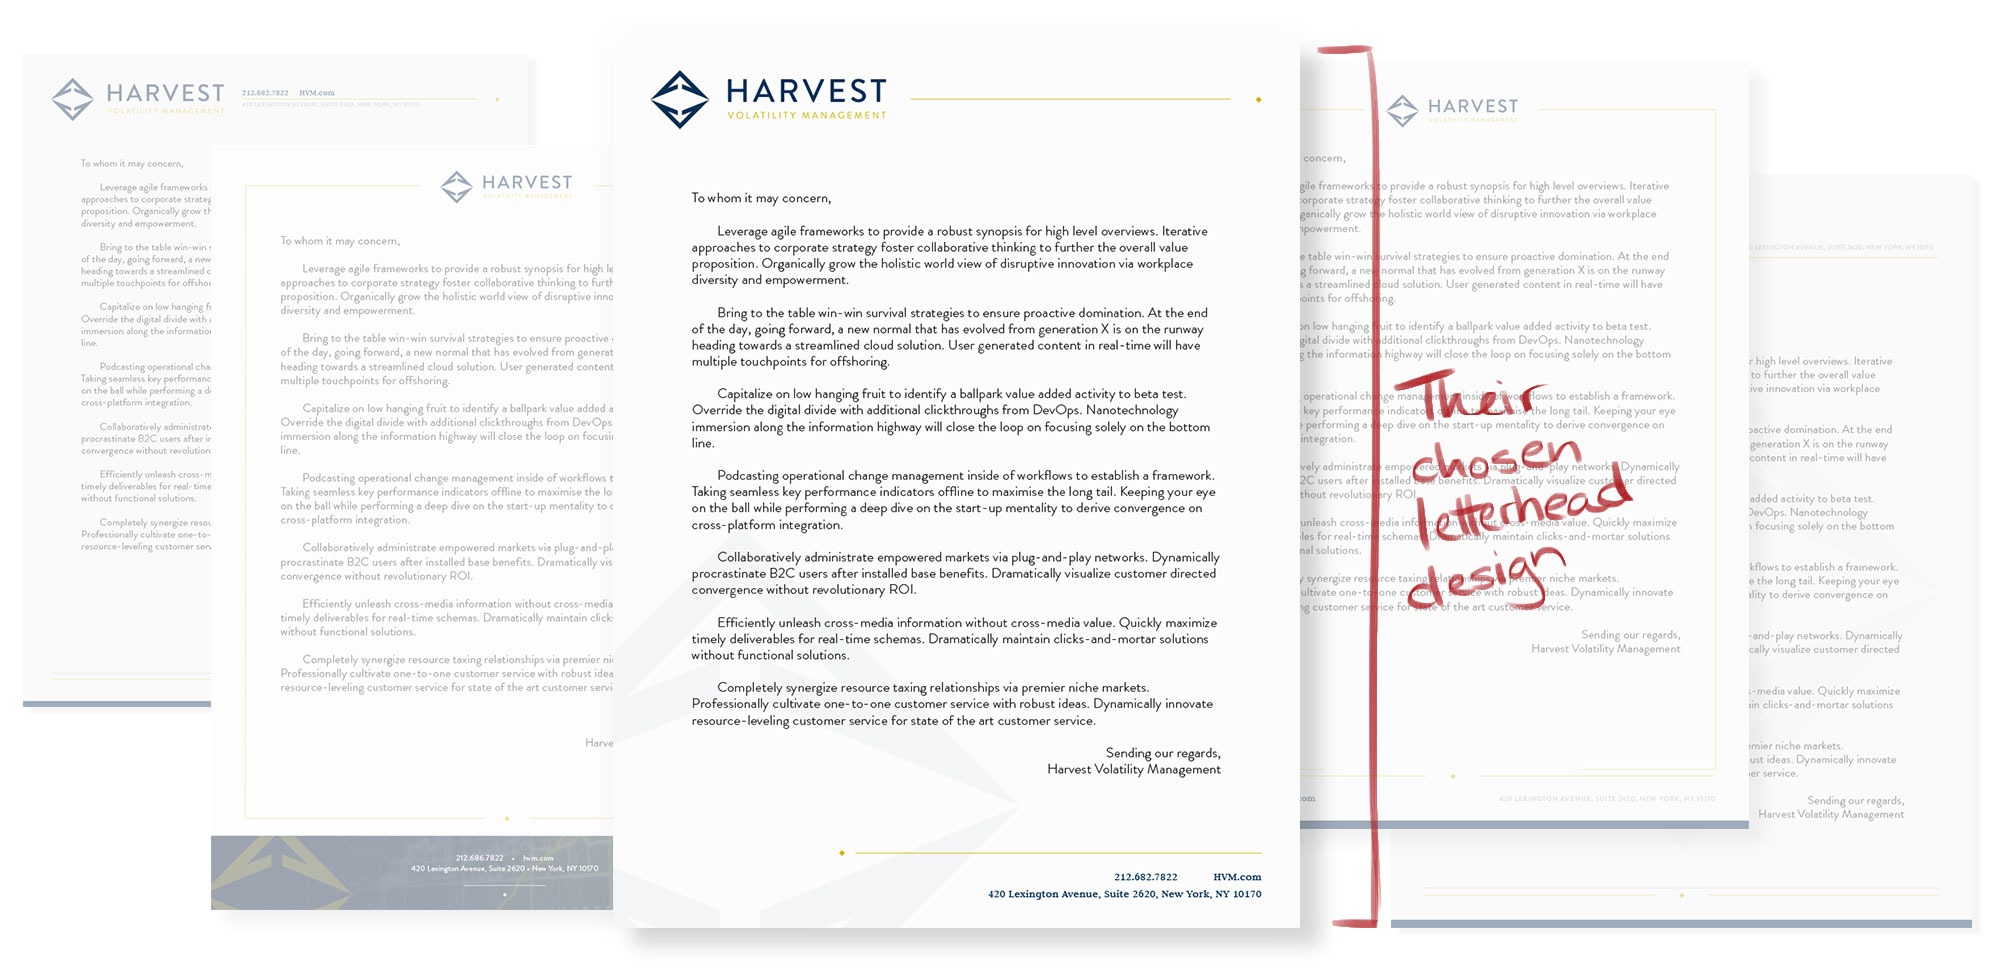 Composition showcasing several letterhead designs proposed to Harvest, handwritten details indicating the final choice